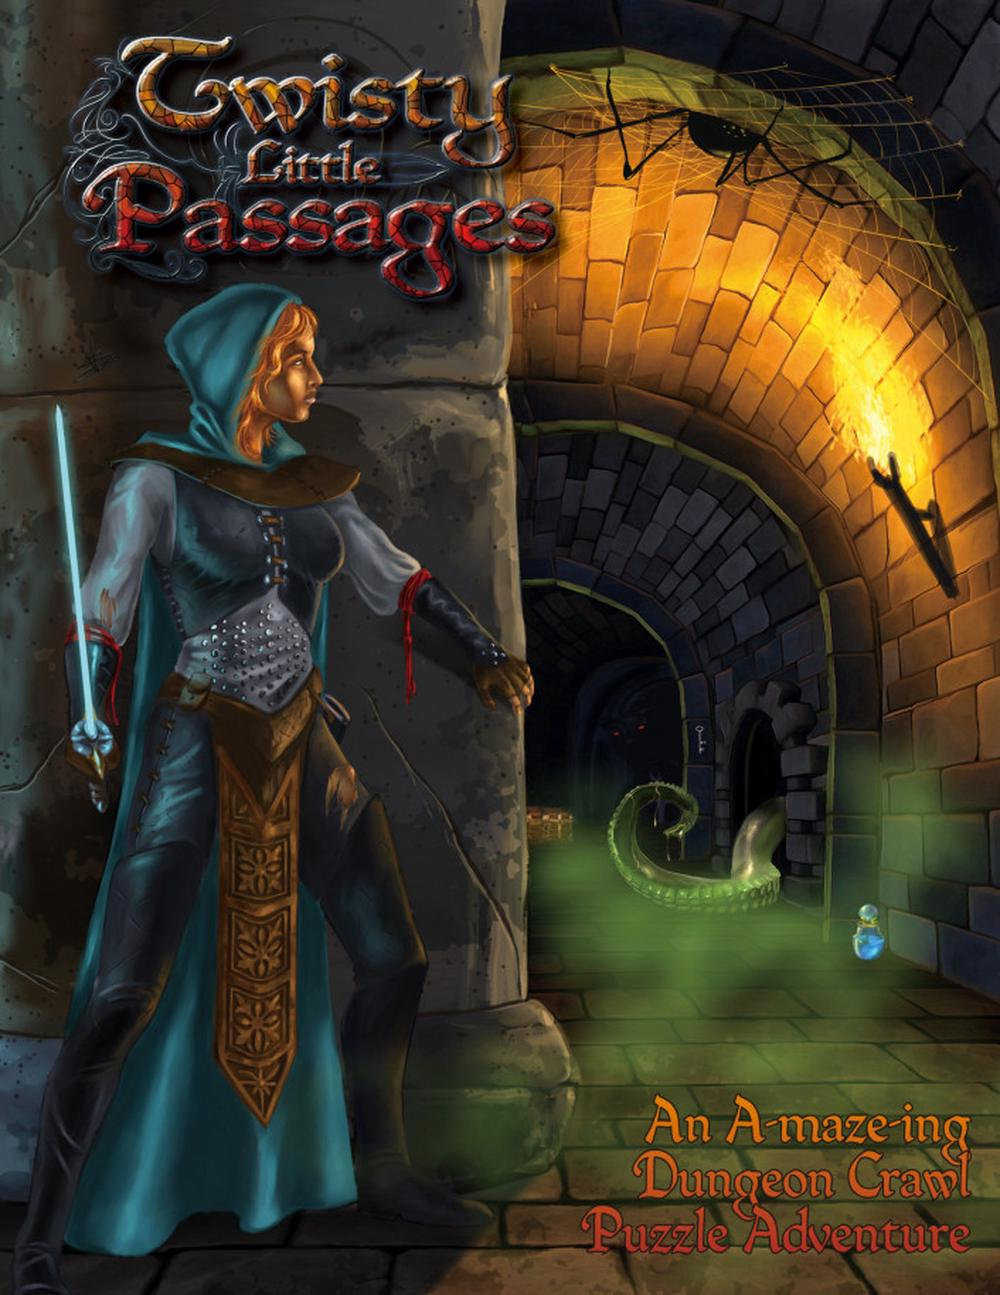 Twisty Little Passages: An a-Maze-Ing Dungeon Crawl Puzzle Adventure